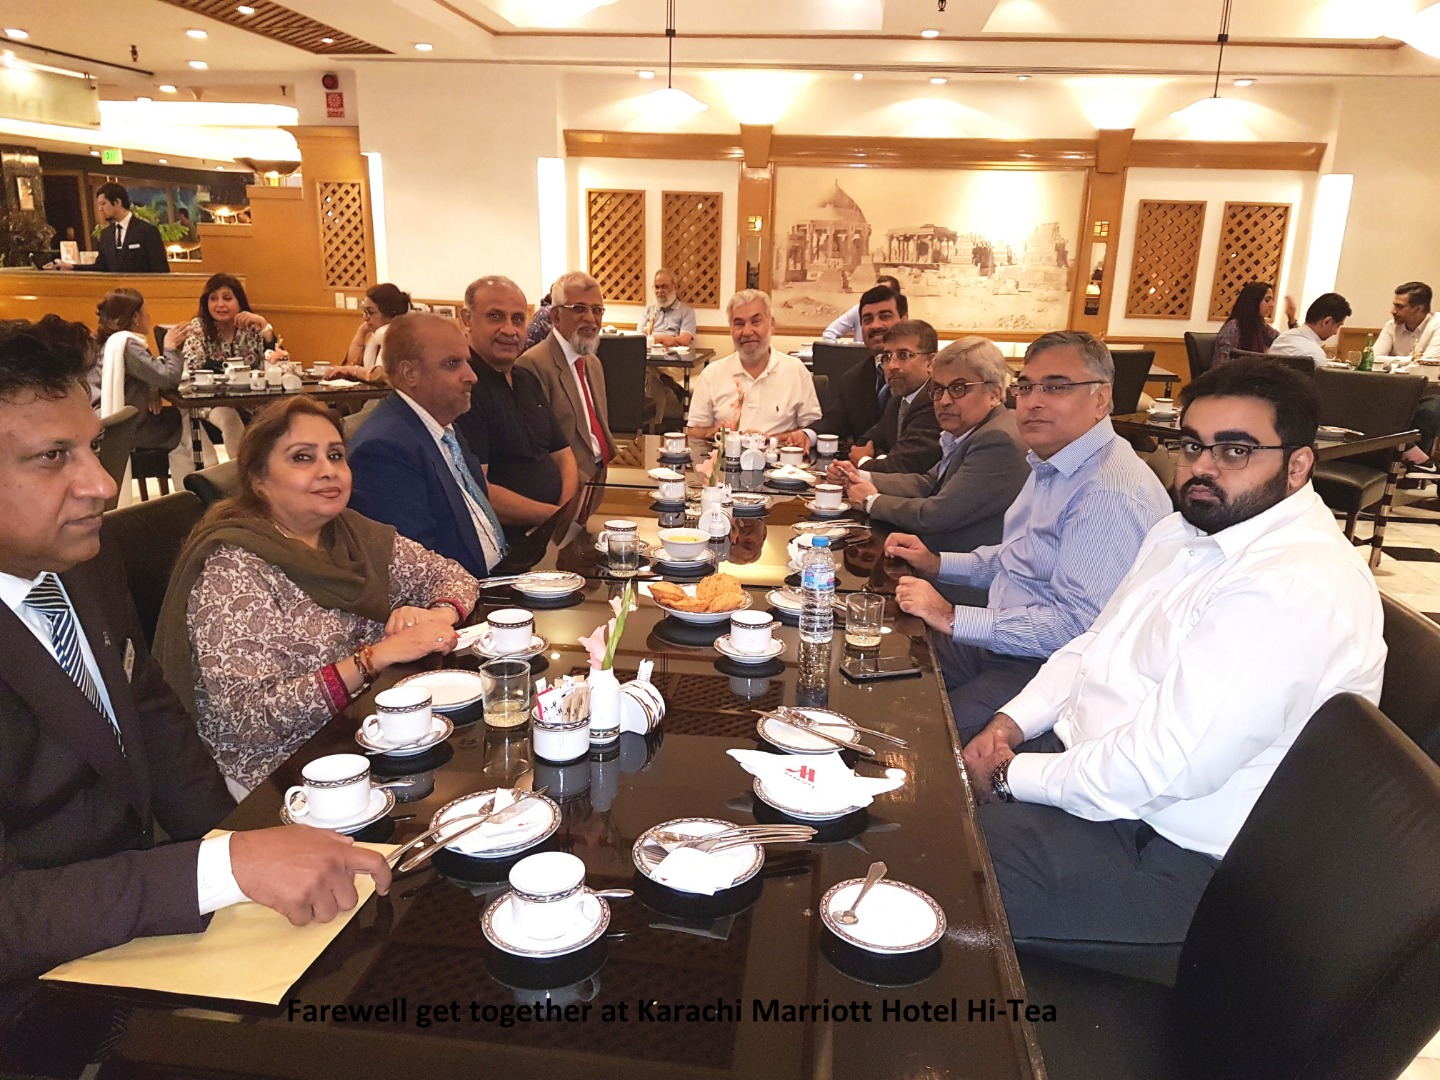 PHA arranged a Farewell in honor of its retiring SVC Mr. Jehan Zeb at Karachi Marriott Hotel